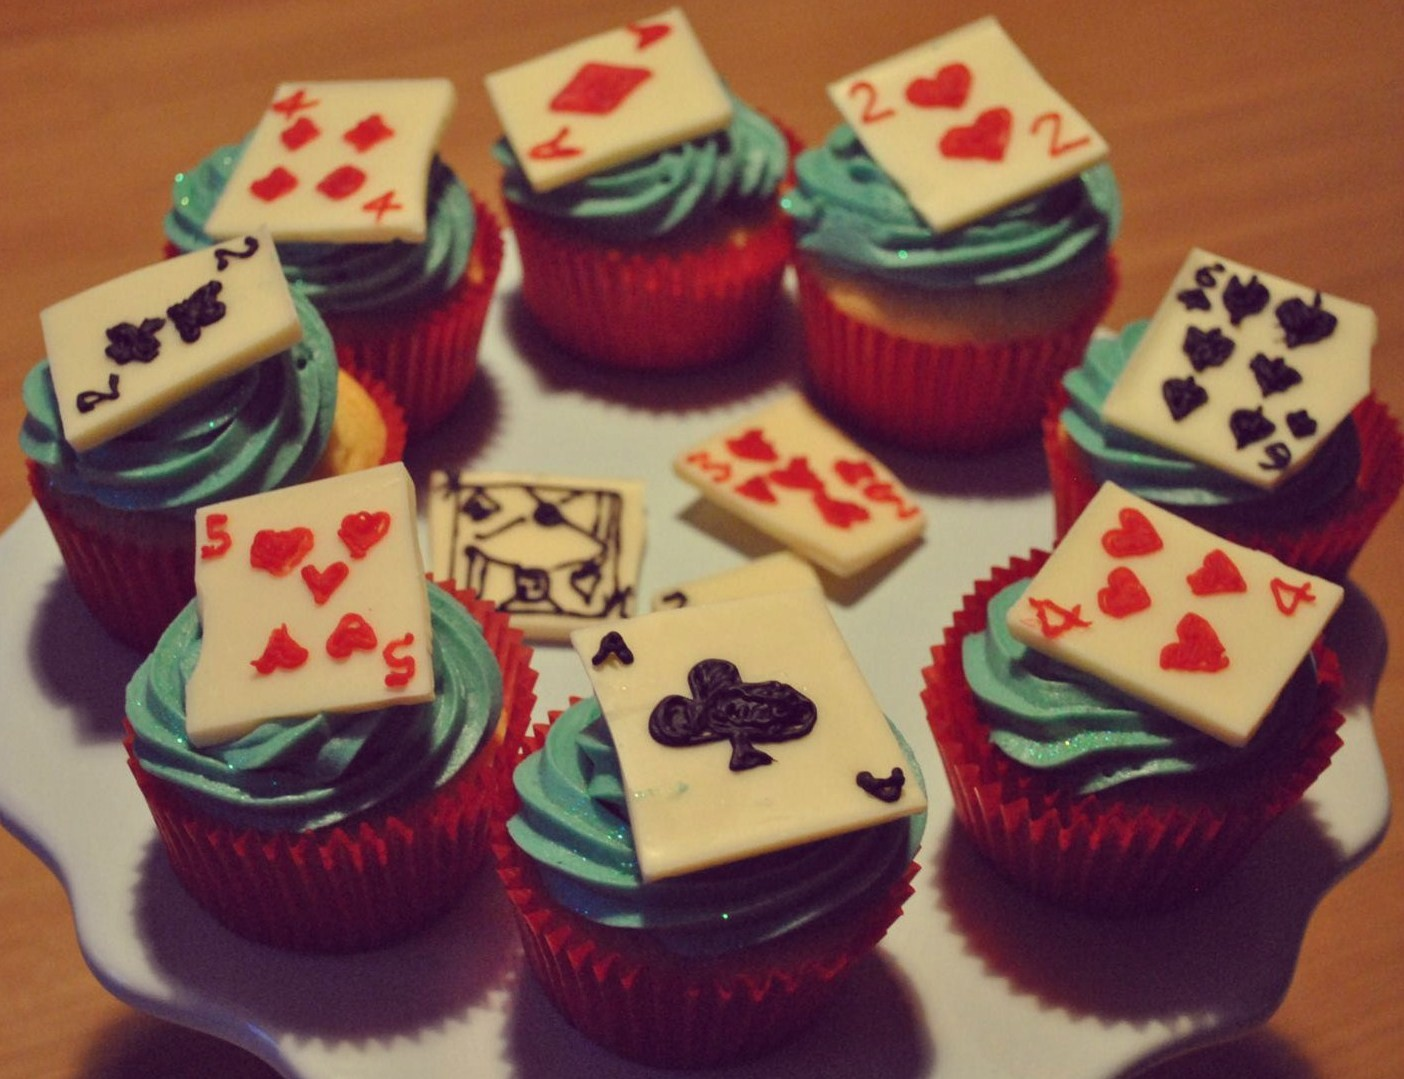 poker-cards-casino-theme-cakes-cupcakes-mumbai-6